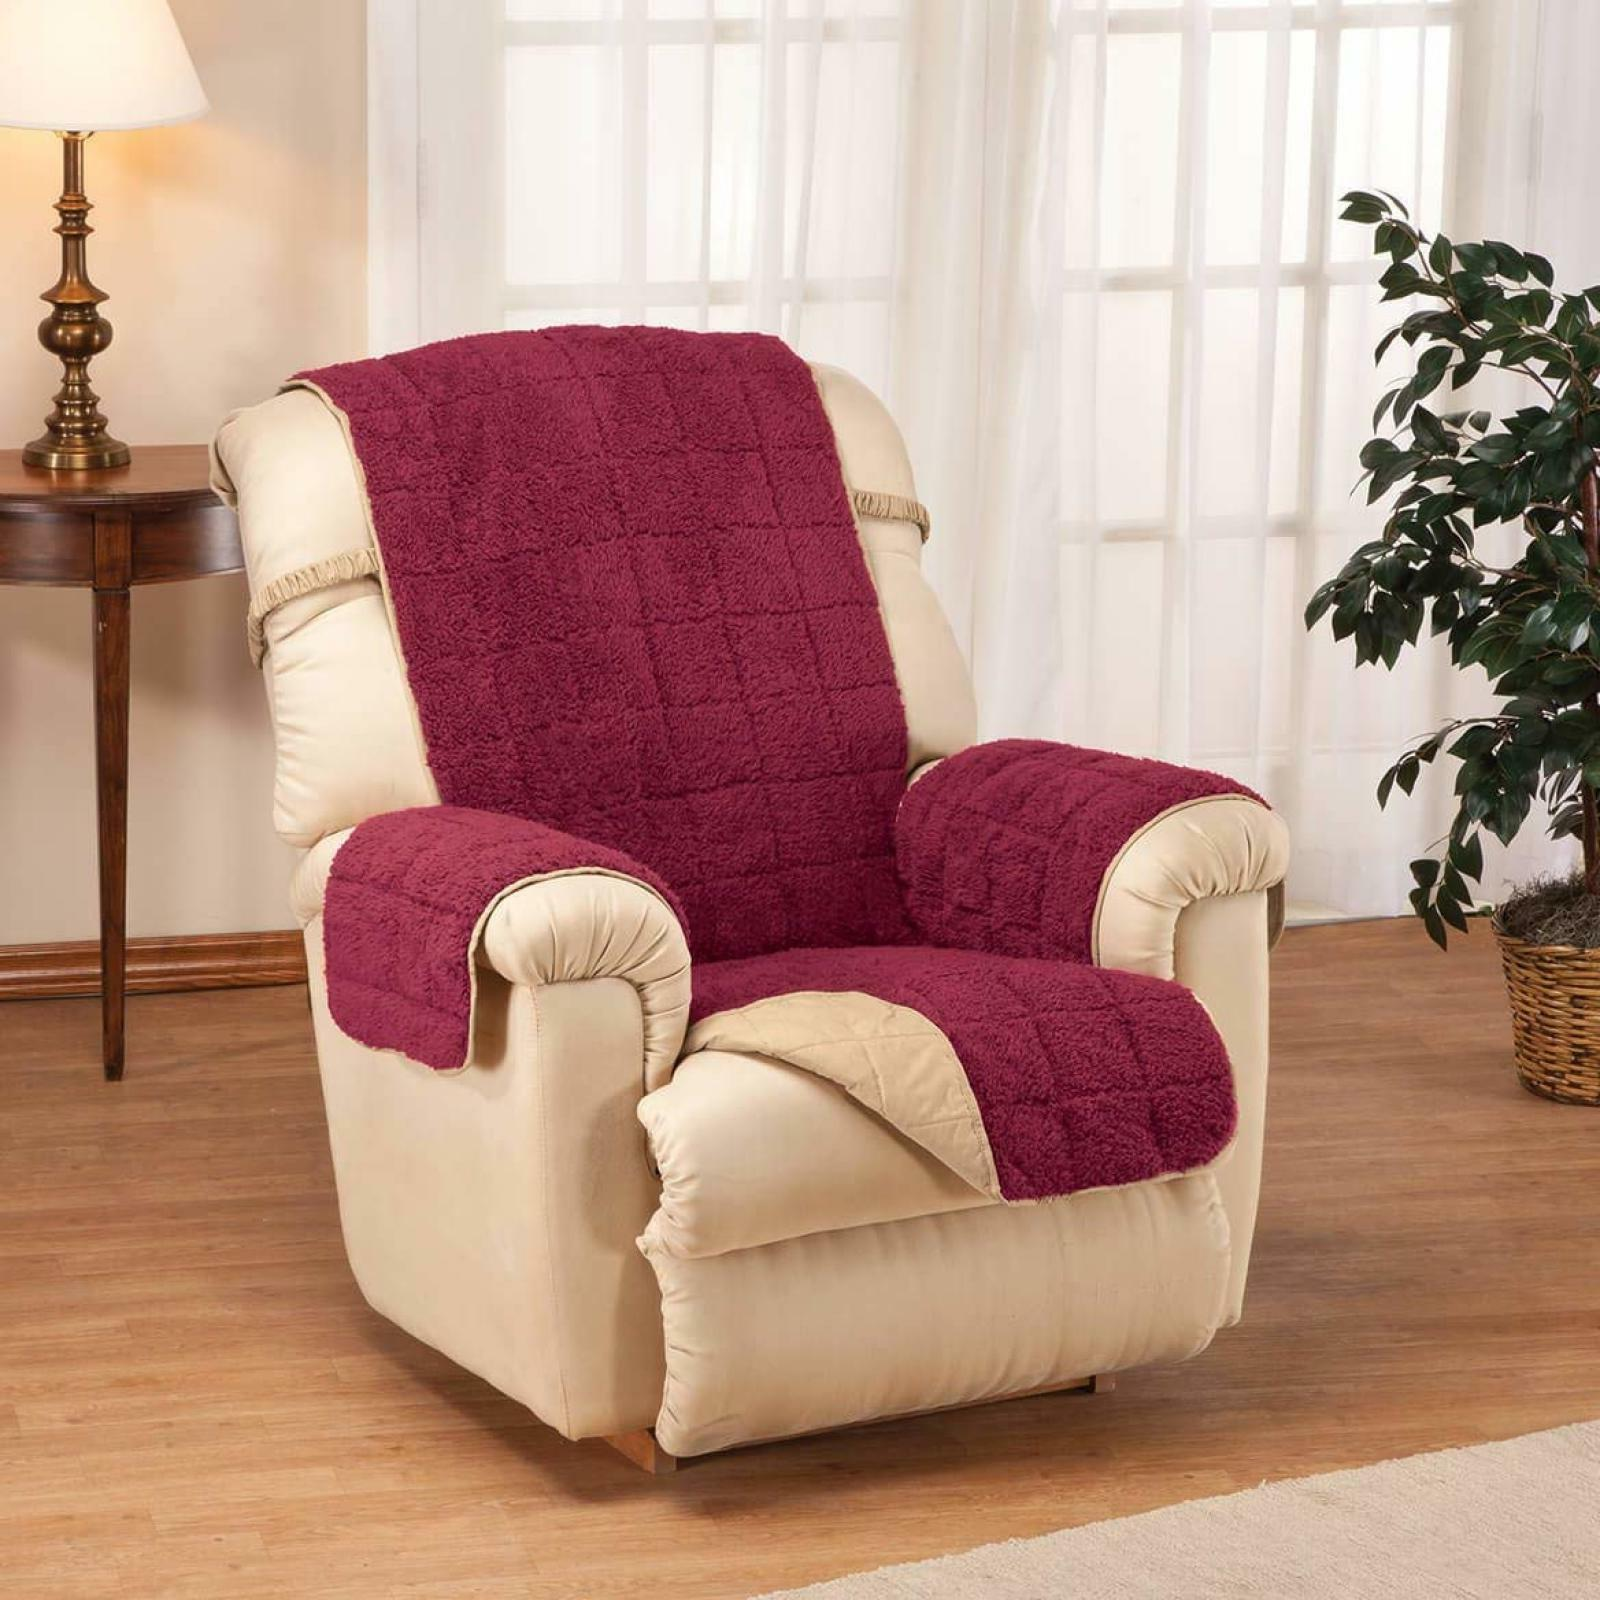 Recliner Chair Cover Protector Waterproof Backing Quilted Sh